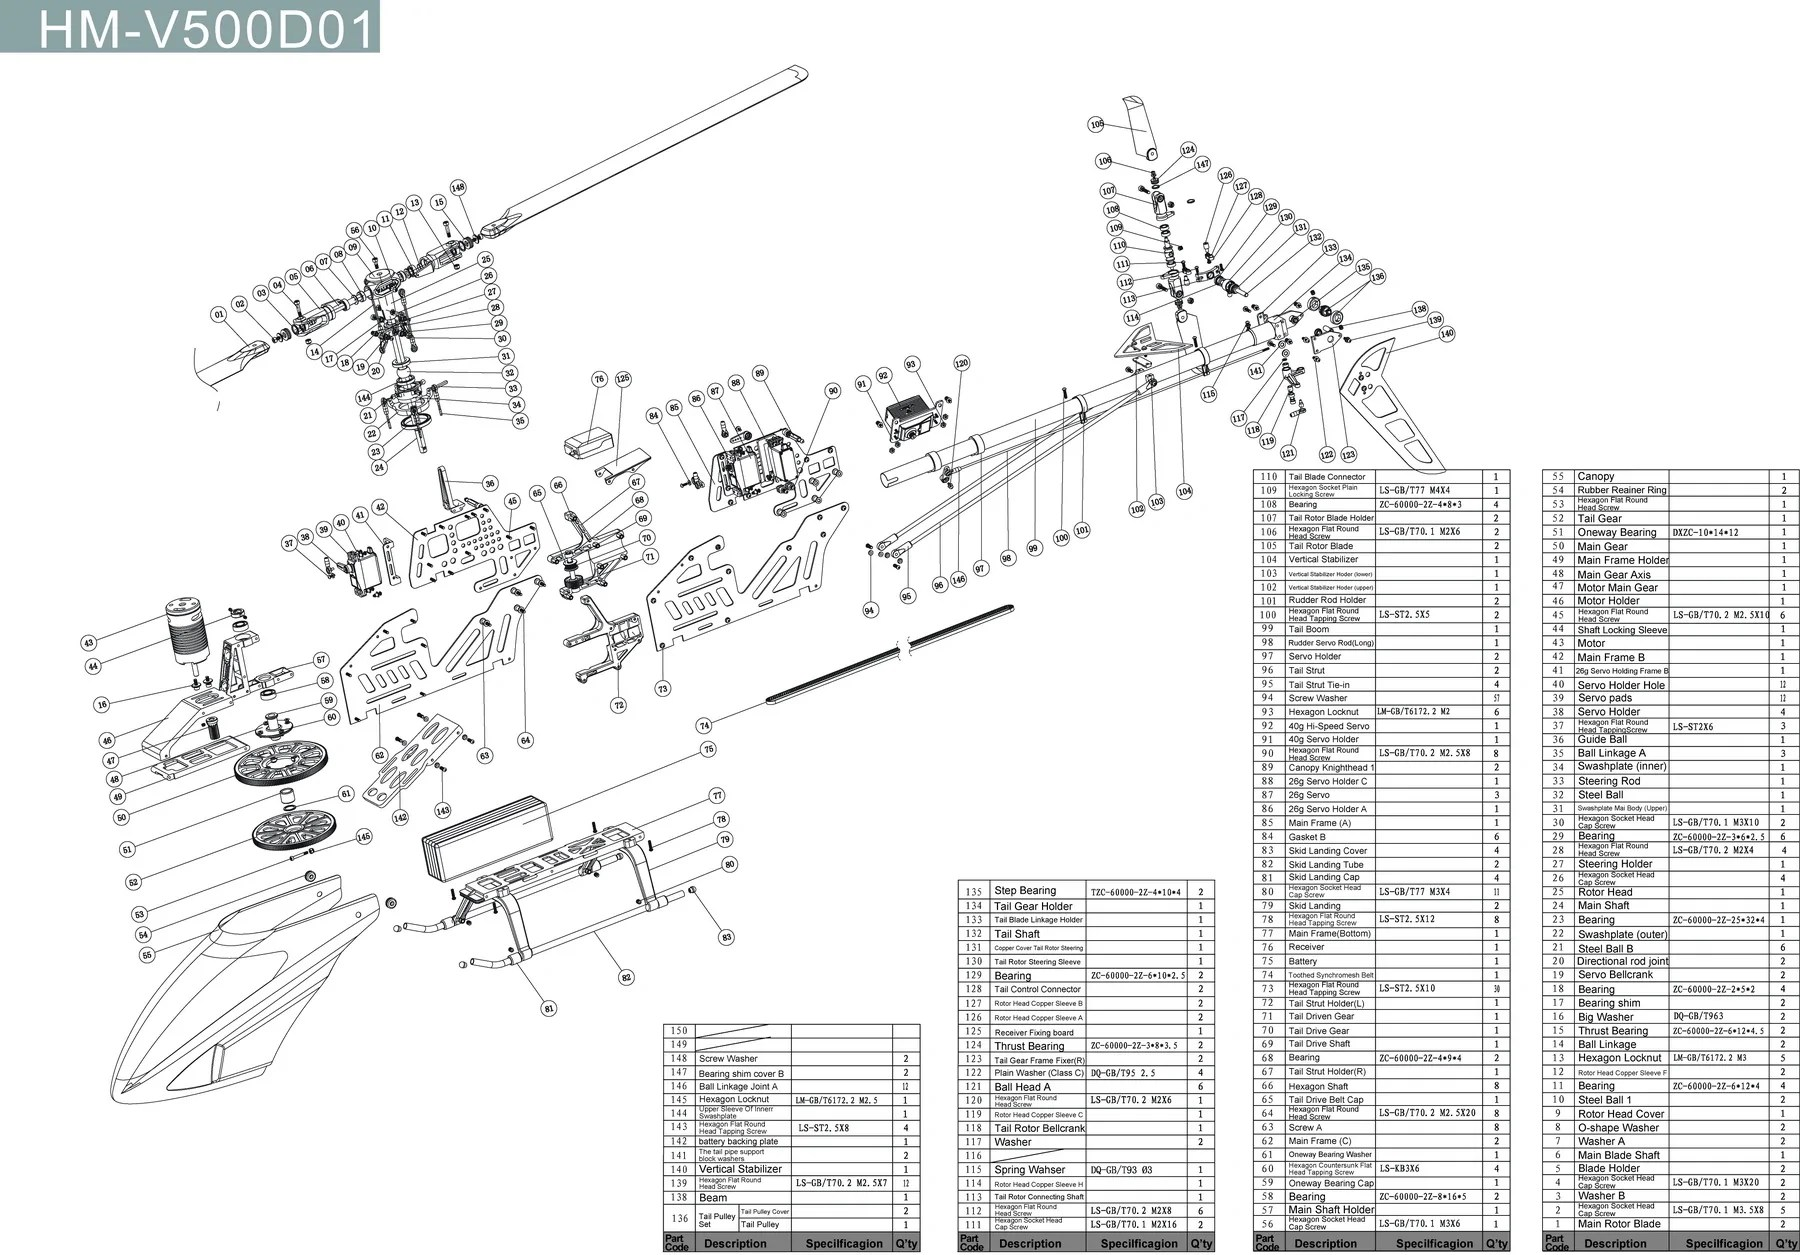 walkera receiver wiring diagram get free image about wiring diagram inside rc helicopters rc helicopter circuit [ 1800 x 1255 Pixel ]